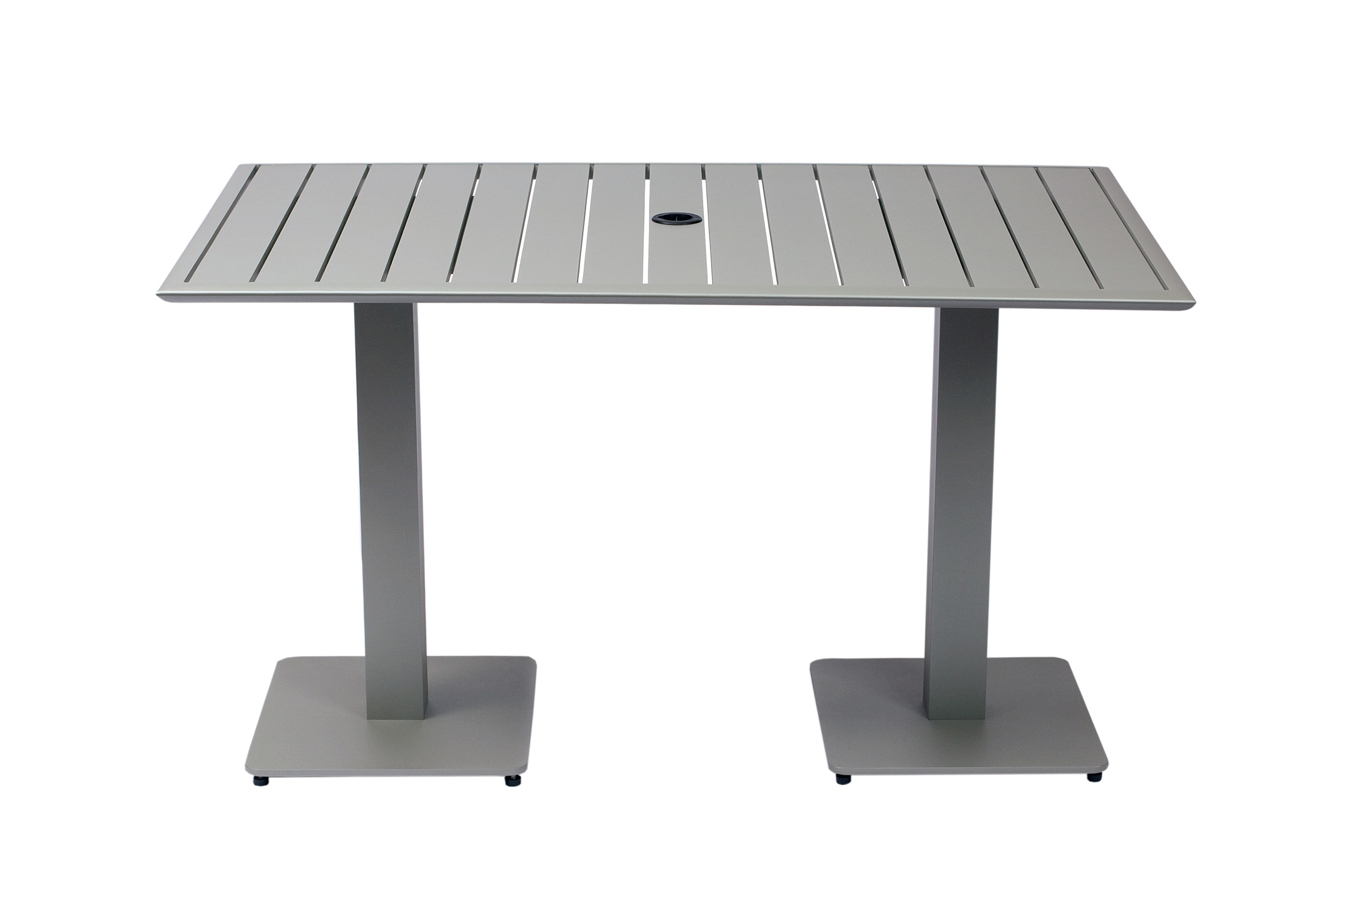 Square restaurant tables - South Beach All Aluminum Outdoor Restaurant Table 32